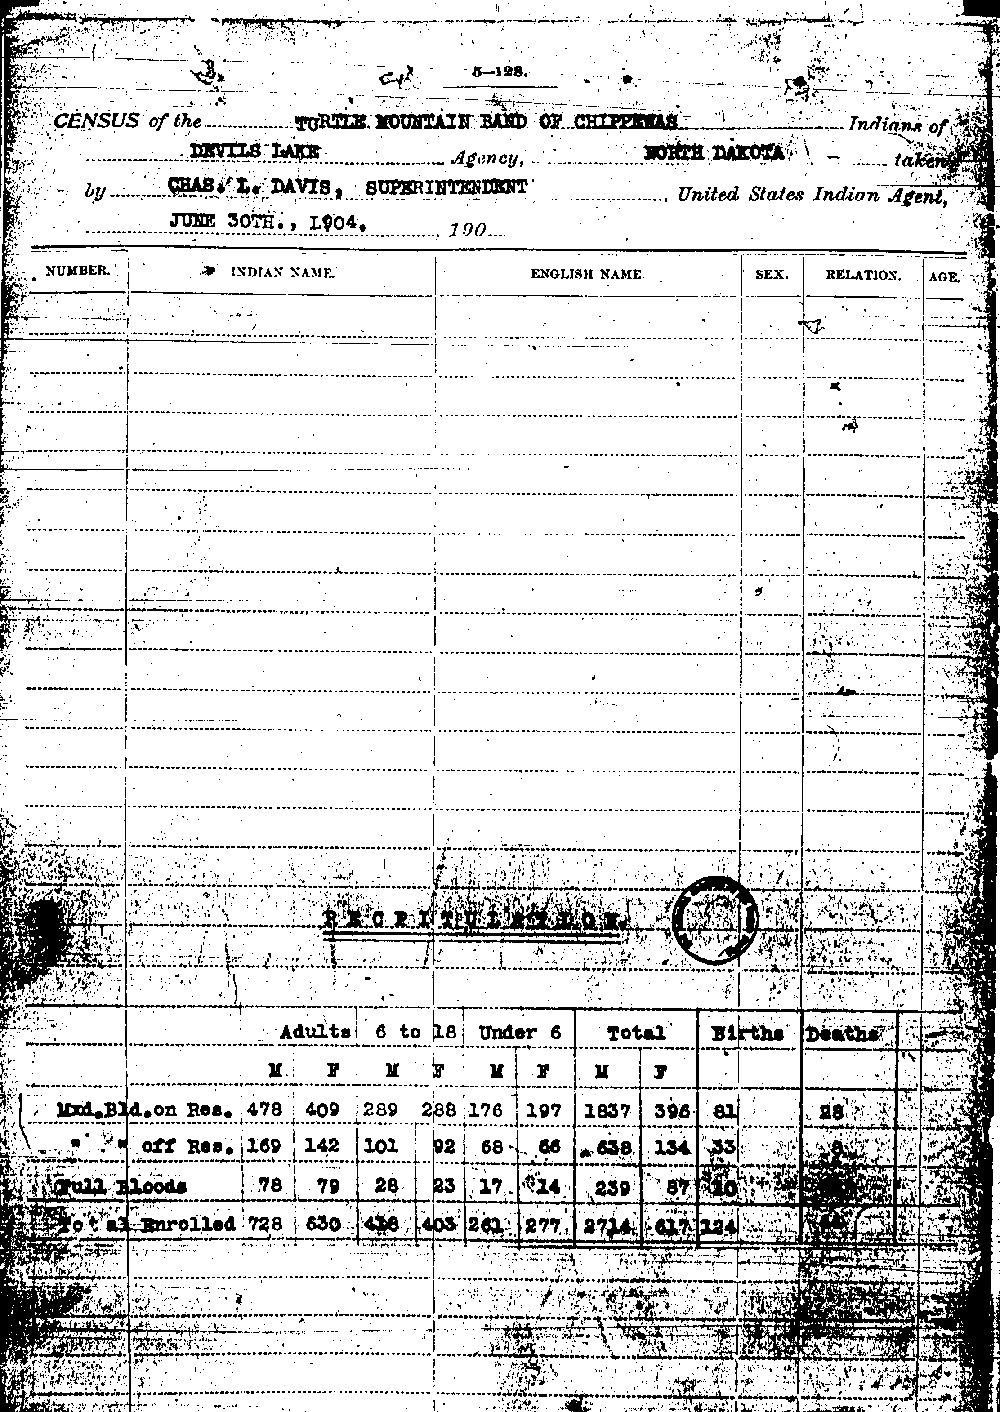 Indian Census, 1904.